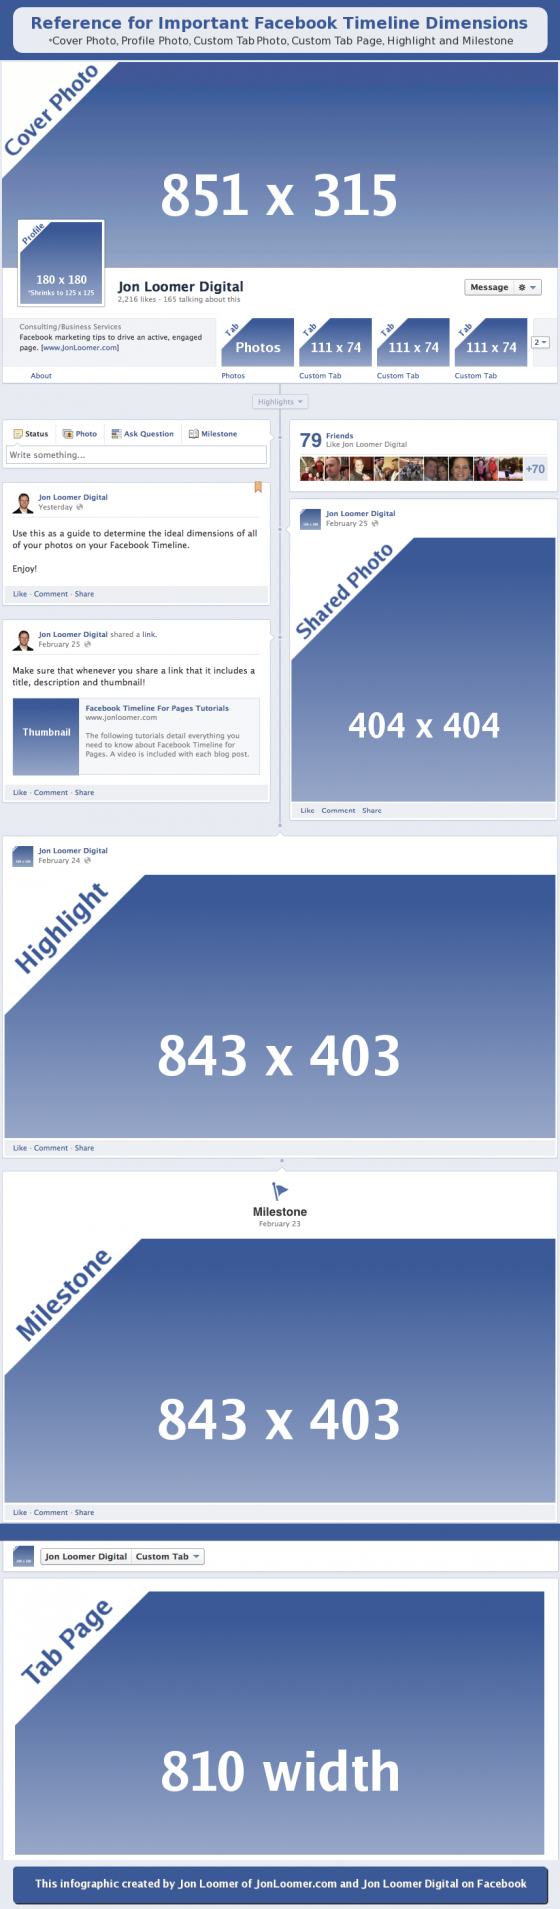 New Facebook Timeline Dimensions